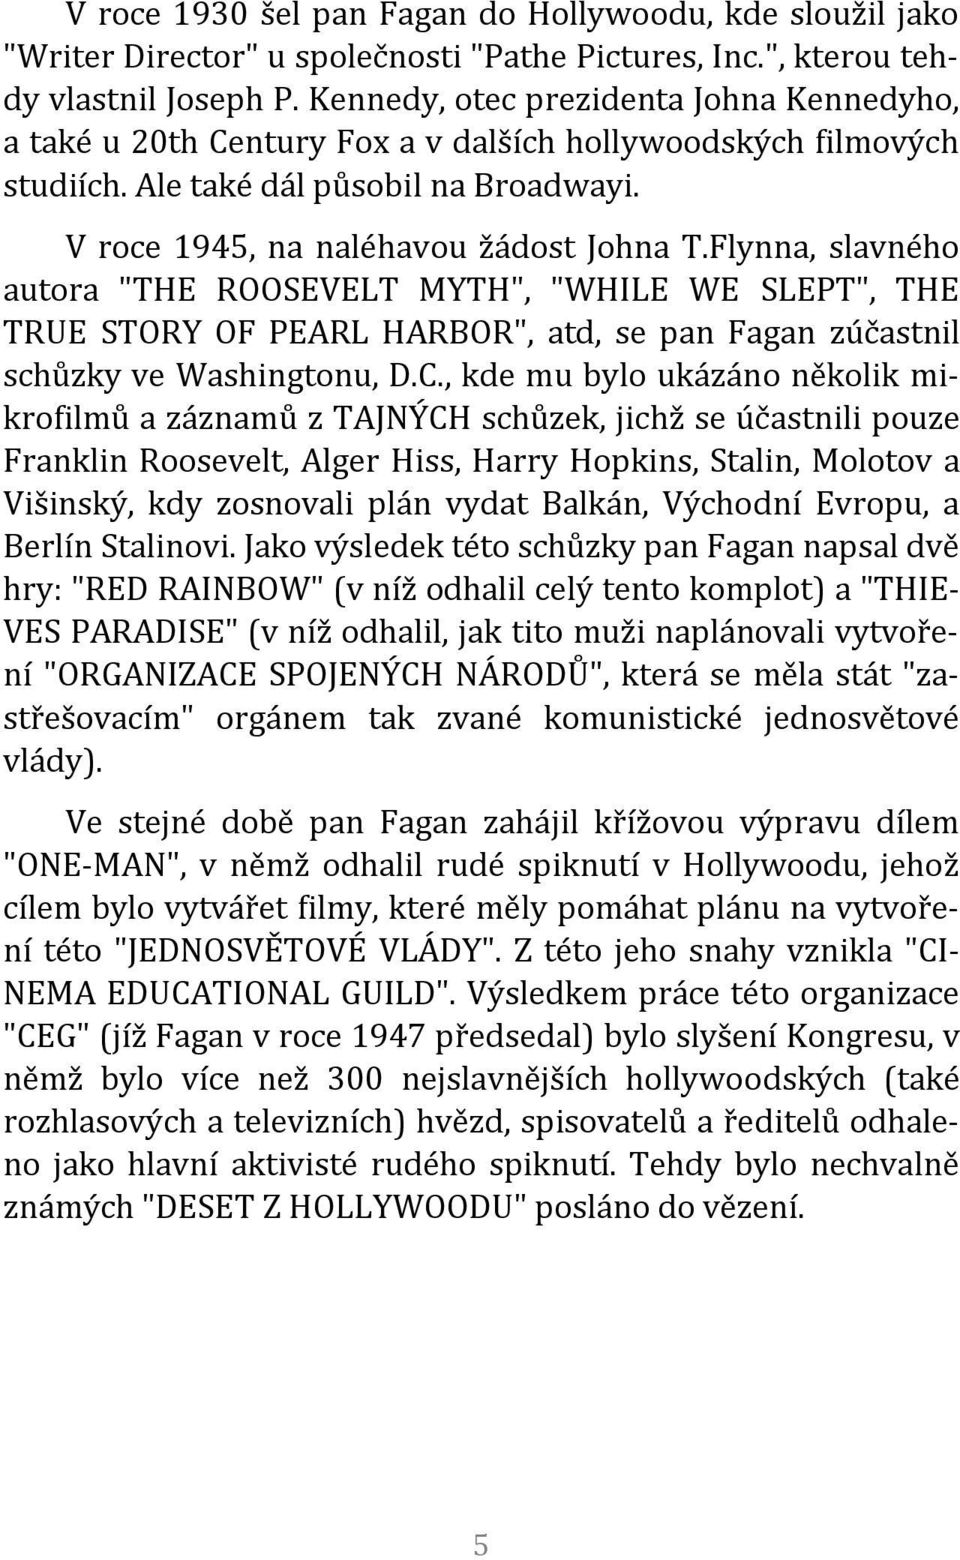 "Flynna, slavného autora ""THE ROOSEVELT MYTH"", ""WHILE WE SLEPT"", THE TRUE STORY OF PEARL HARBOR"", atd, se pan Fagan zúčastnil schůzky ve Washingtonu, D.C."